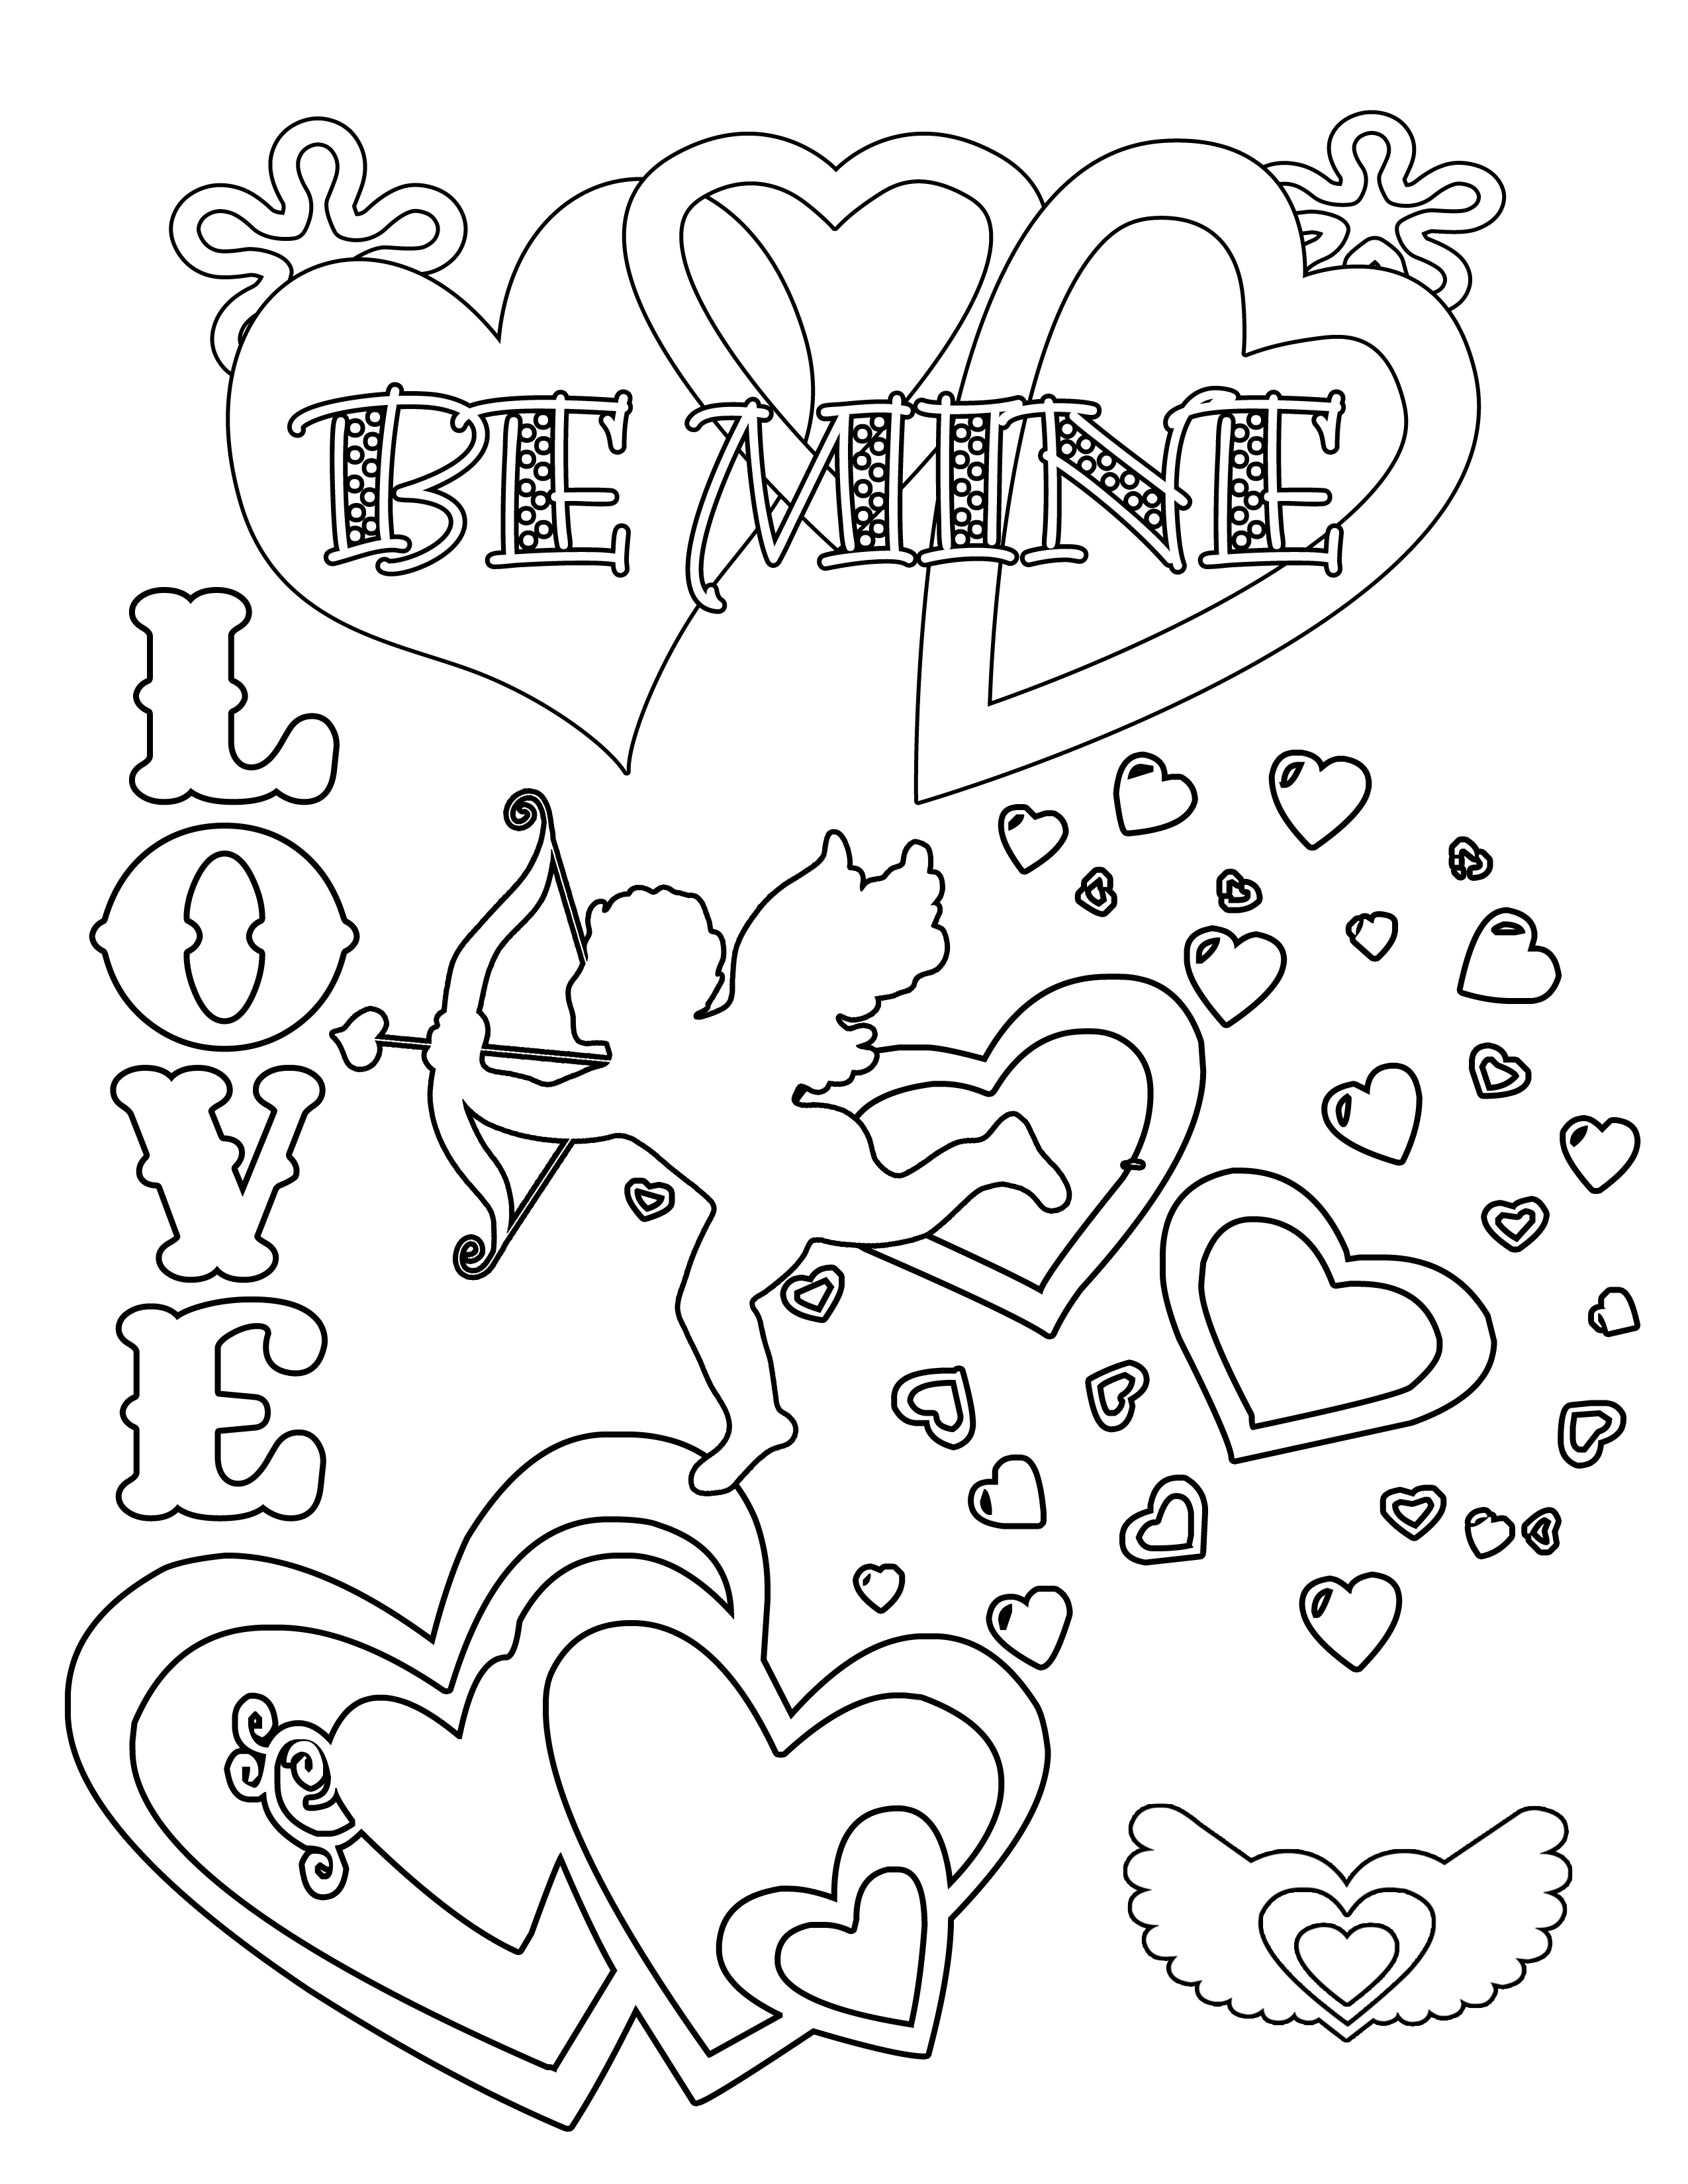 valentines day coloring pages free printable party simplicity free valentines day coloring pages and valentines day printable free coloring pages